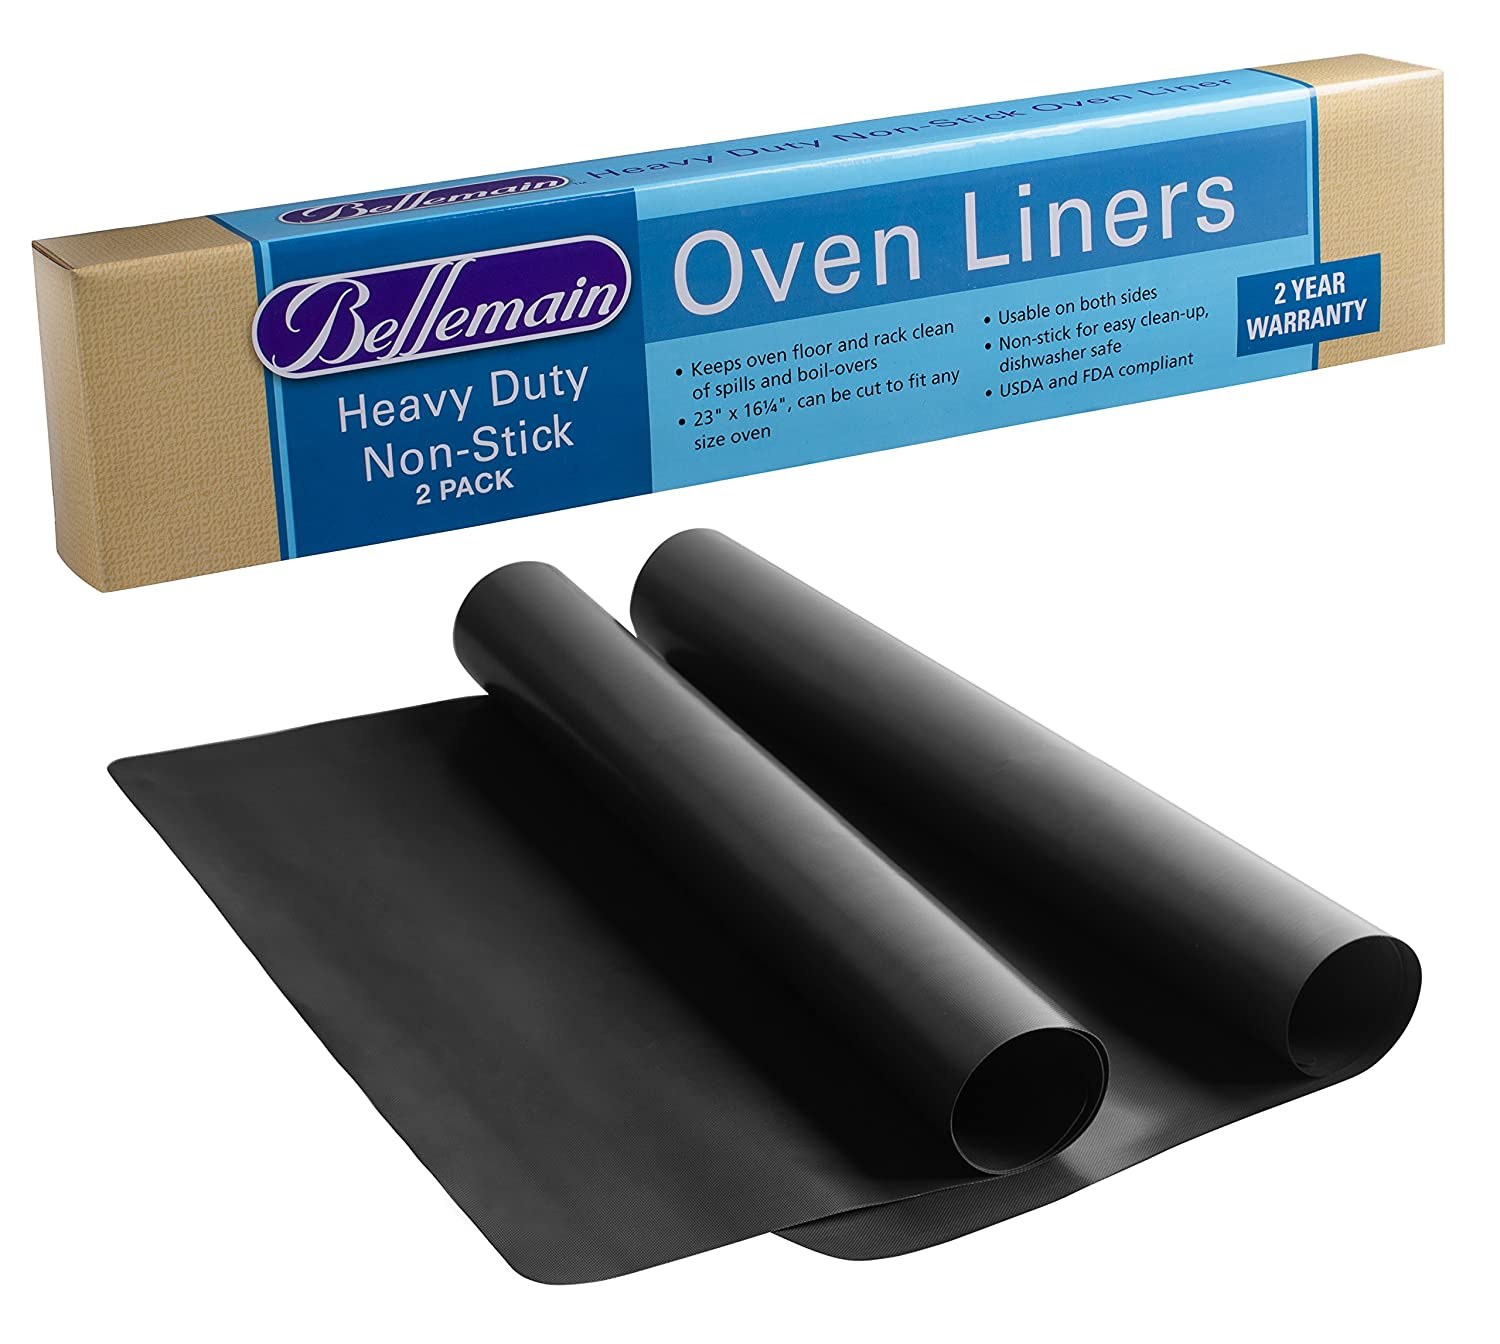 Oven Liners For Electric Ovens ~ Oven liner heavy duty by bellemain pack for electric